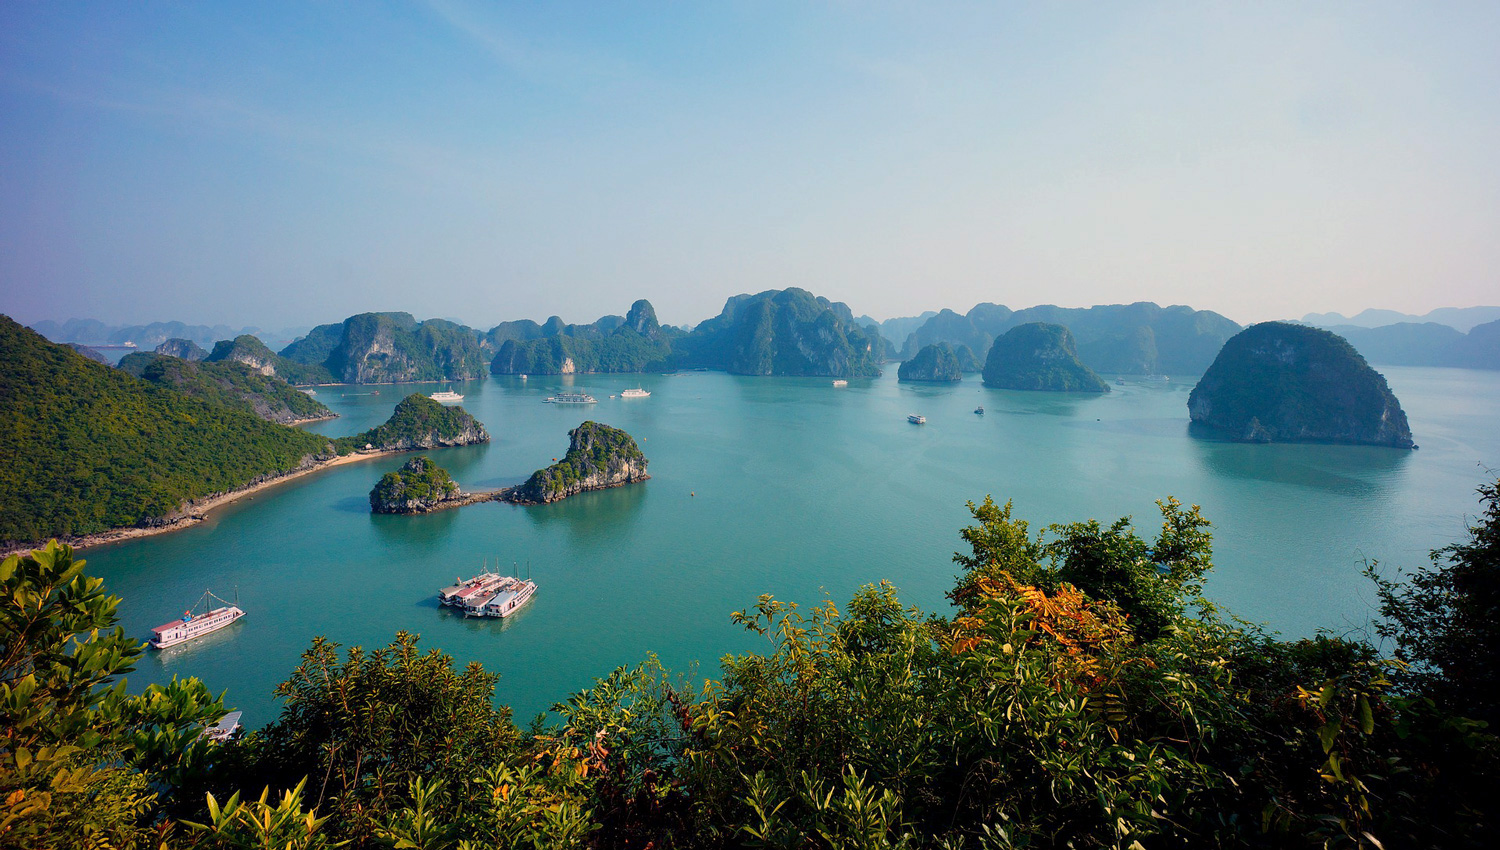 The beautiful limestone karst scenery of Halong Bay.   Image:   Woong Hoe